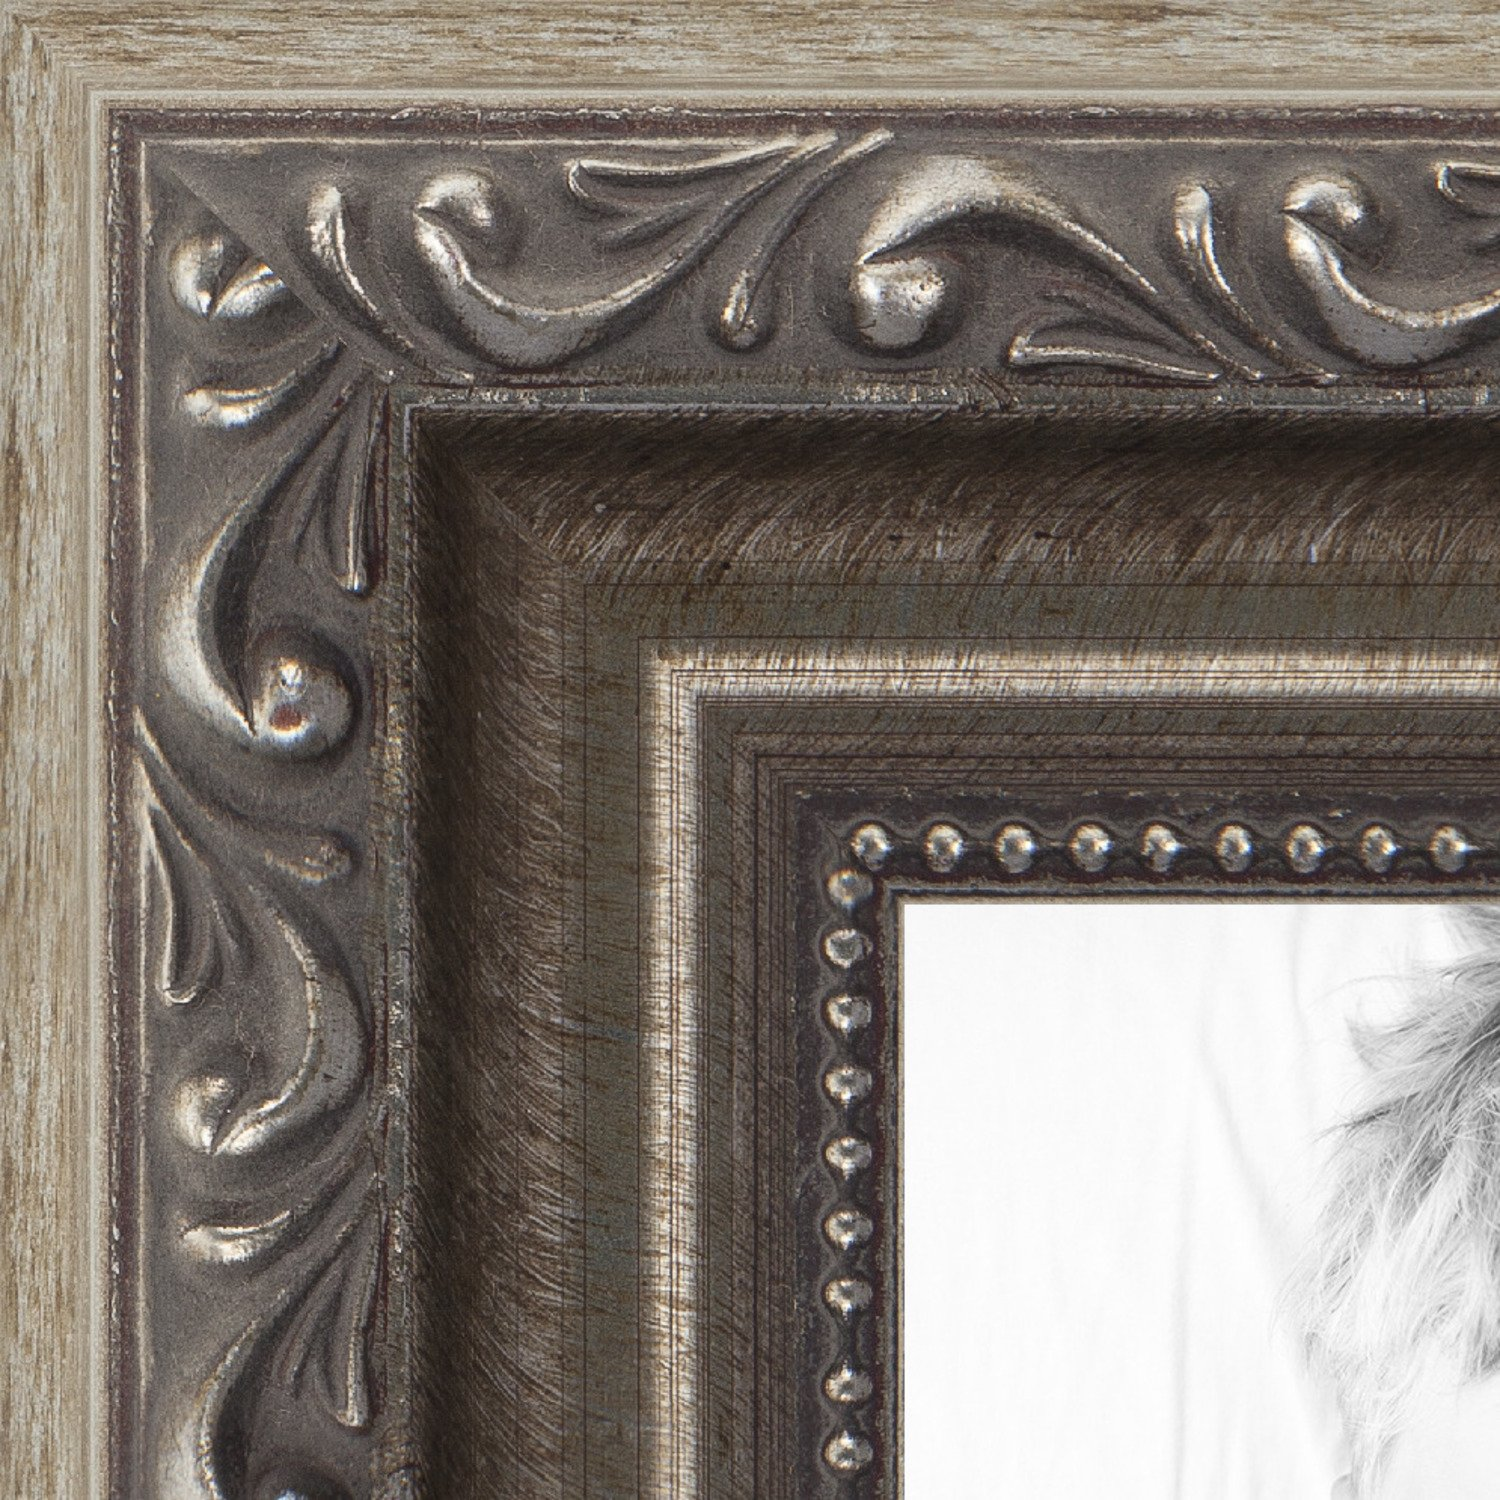 ArtToFrames 11x14 inch Antique Silver with Beads Wood Picture Frame, WOMD6661-11x14 by ArtToFrames